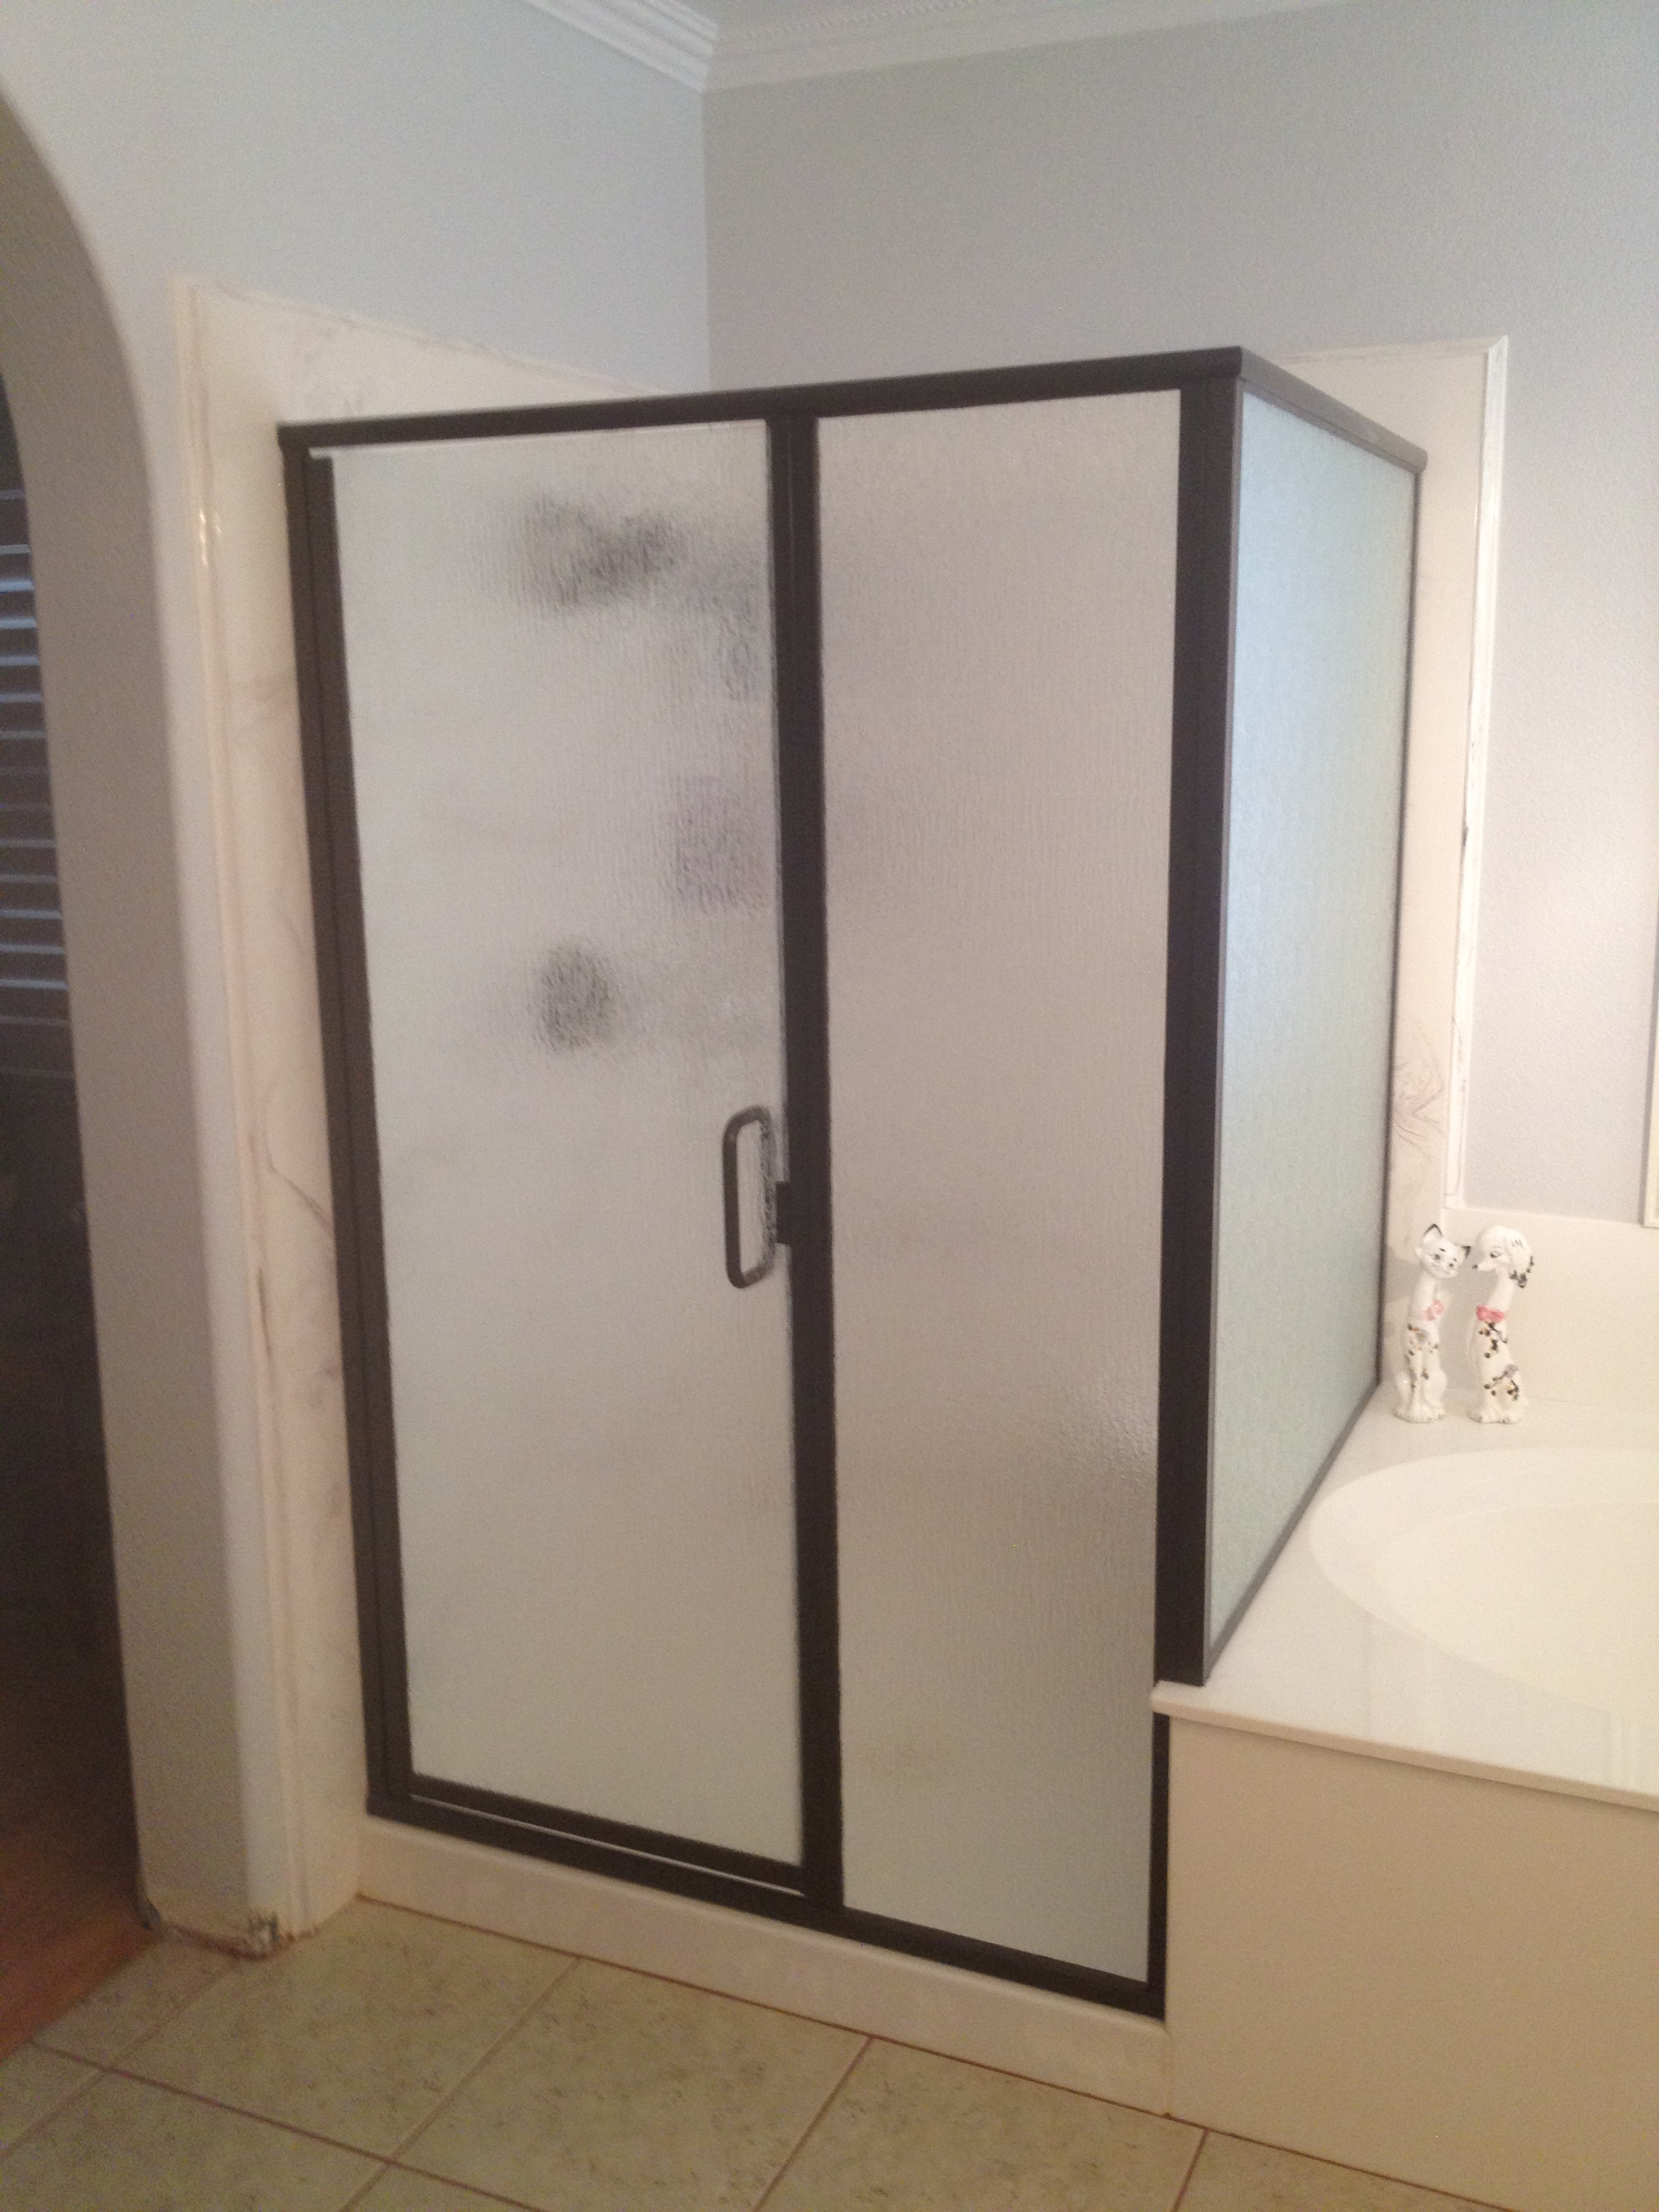 Semi Frameless Shower Enclosures semi- frameless shower door | kerabath blog